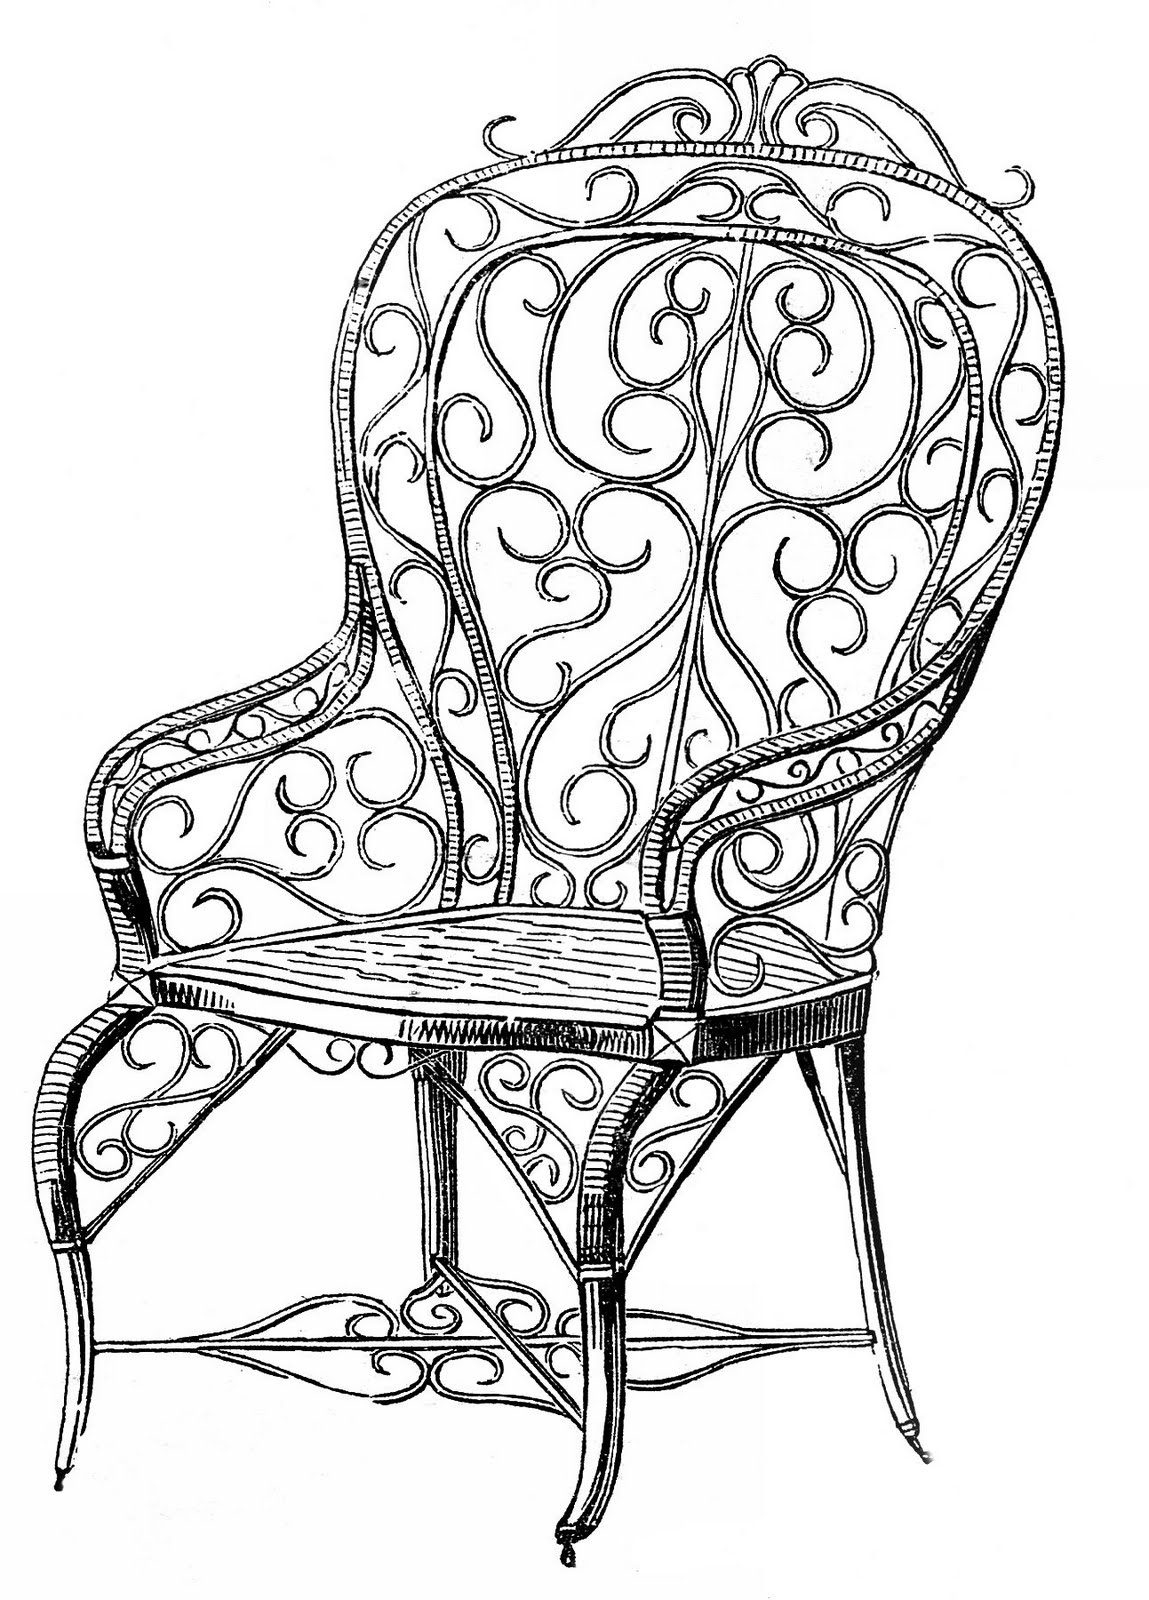 Antiques furniture clipart clipart stock Free Antique Cliparts, Download Free Clip Art, Free Clip Art on ... clipart stock